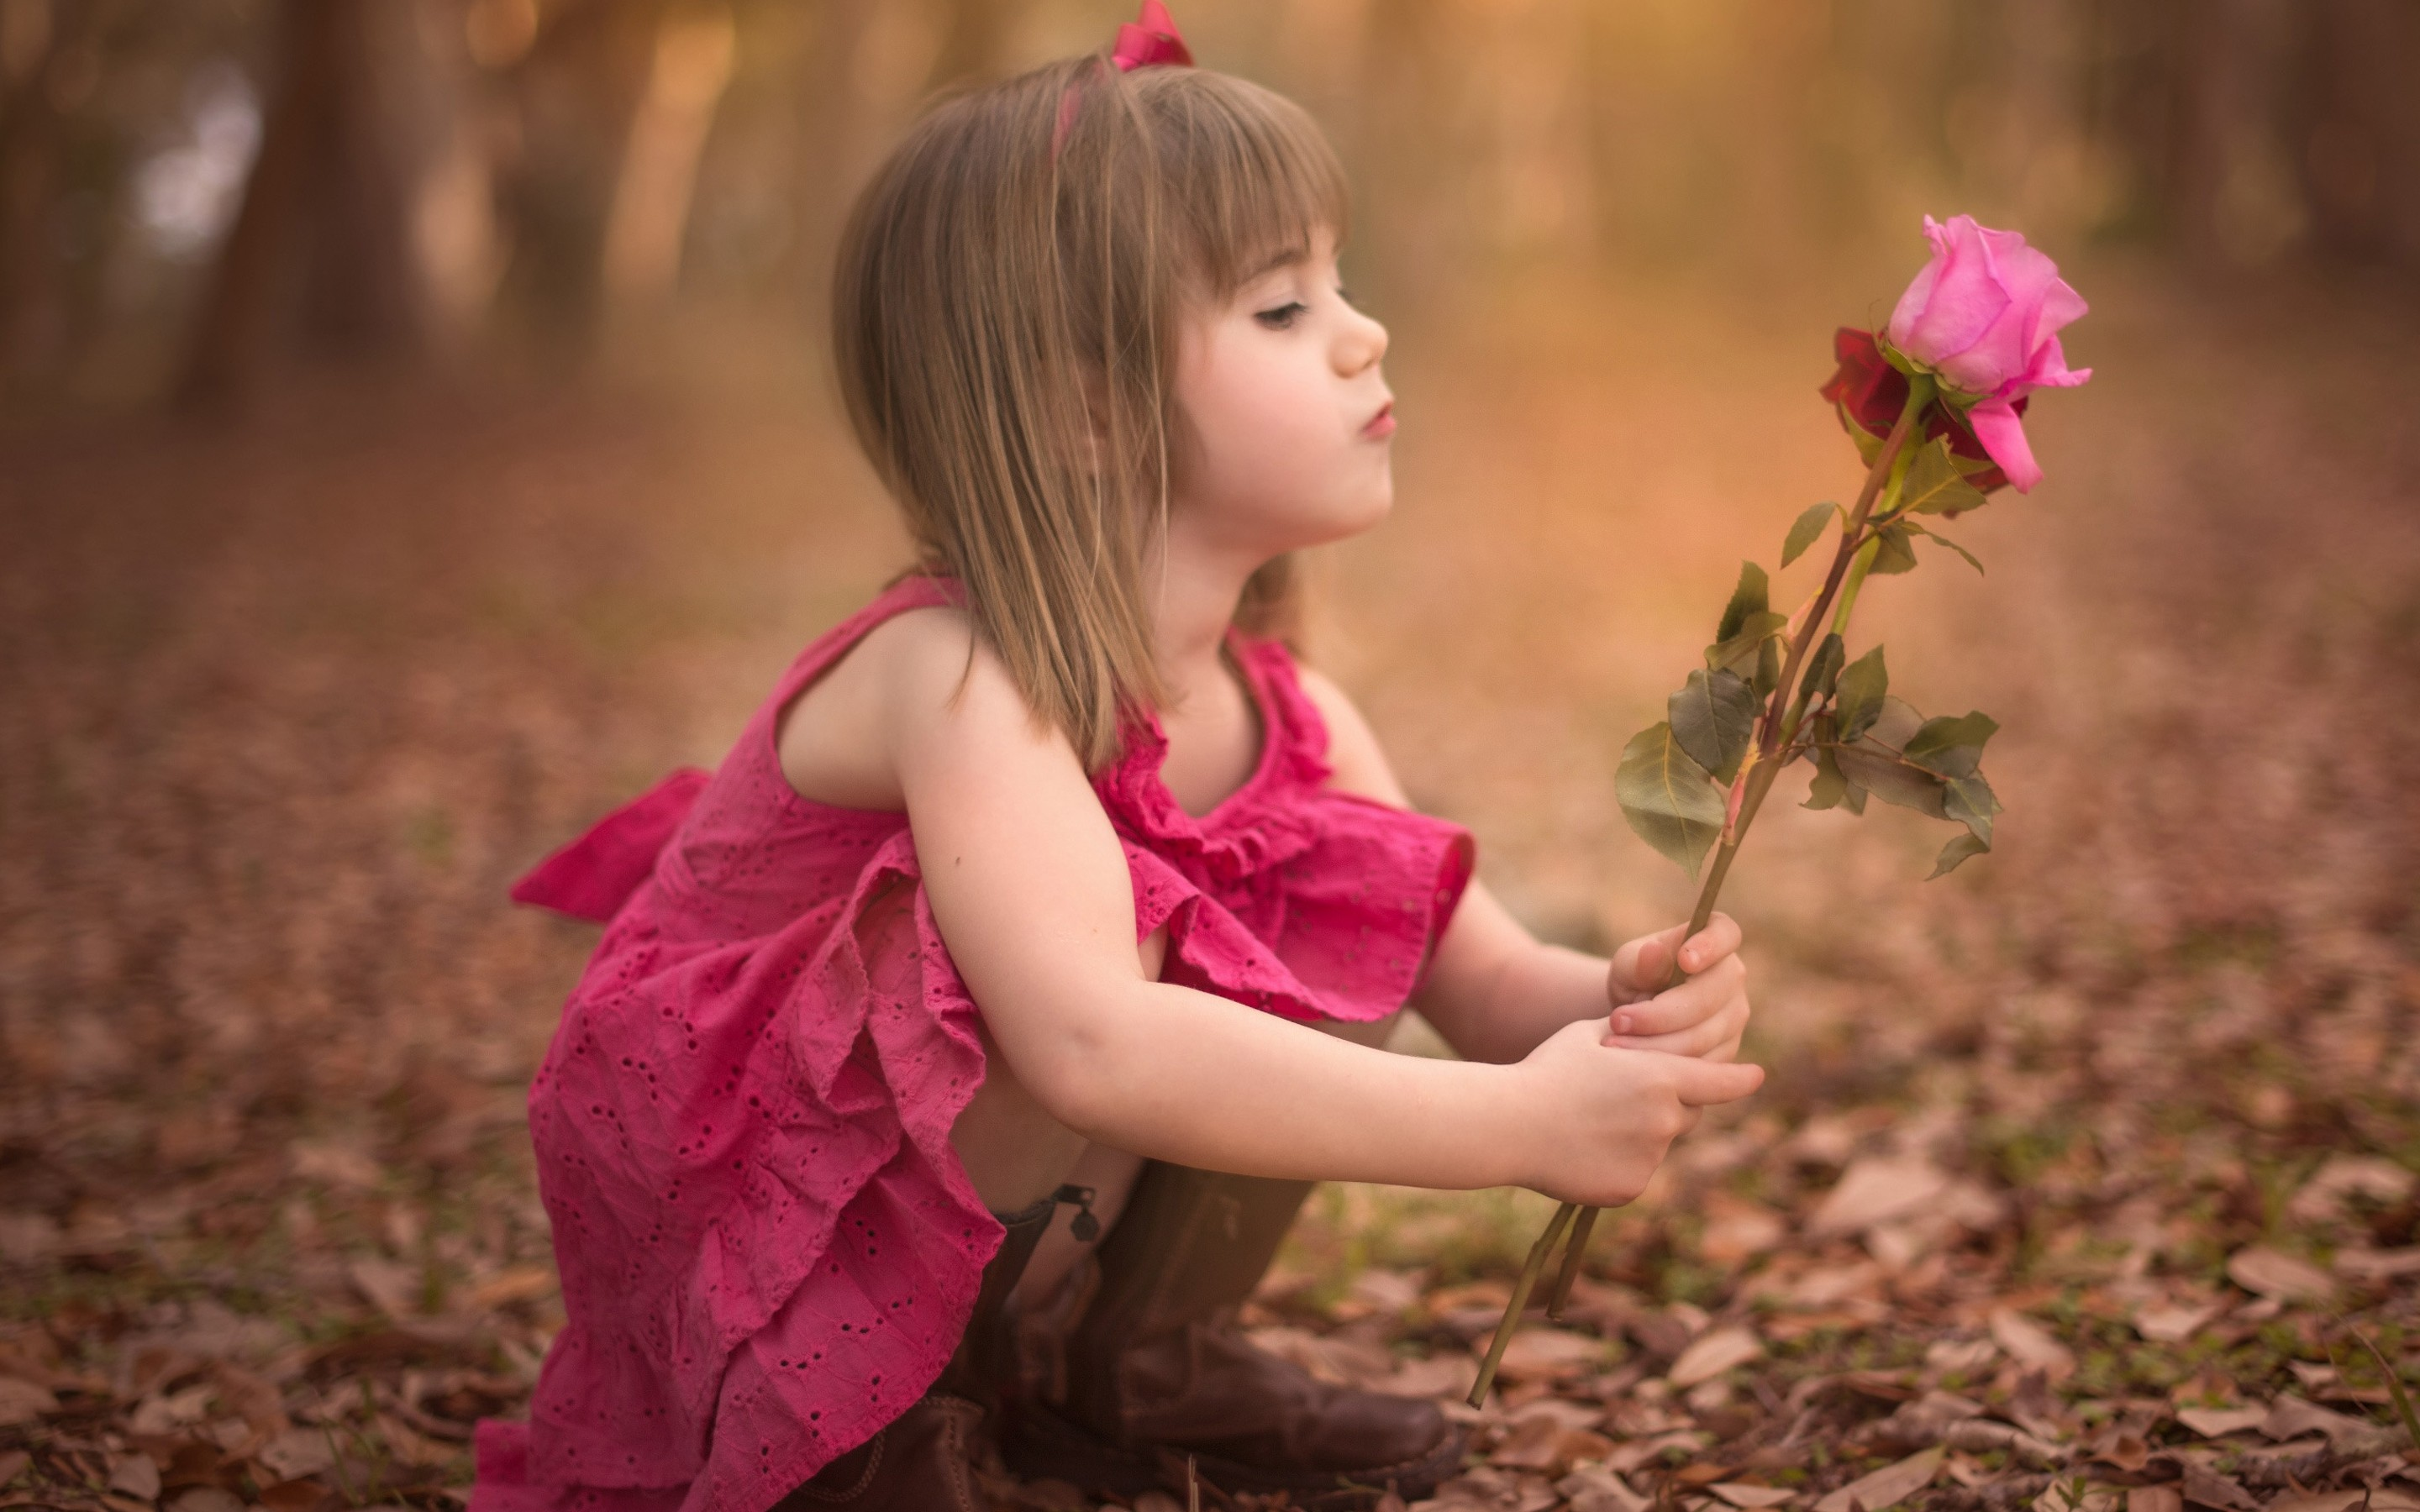 Cute Wallpapers For Girls Wallpaper 2880x1800